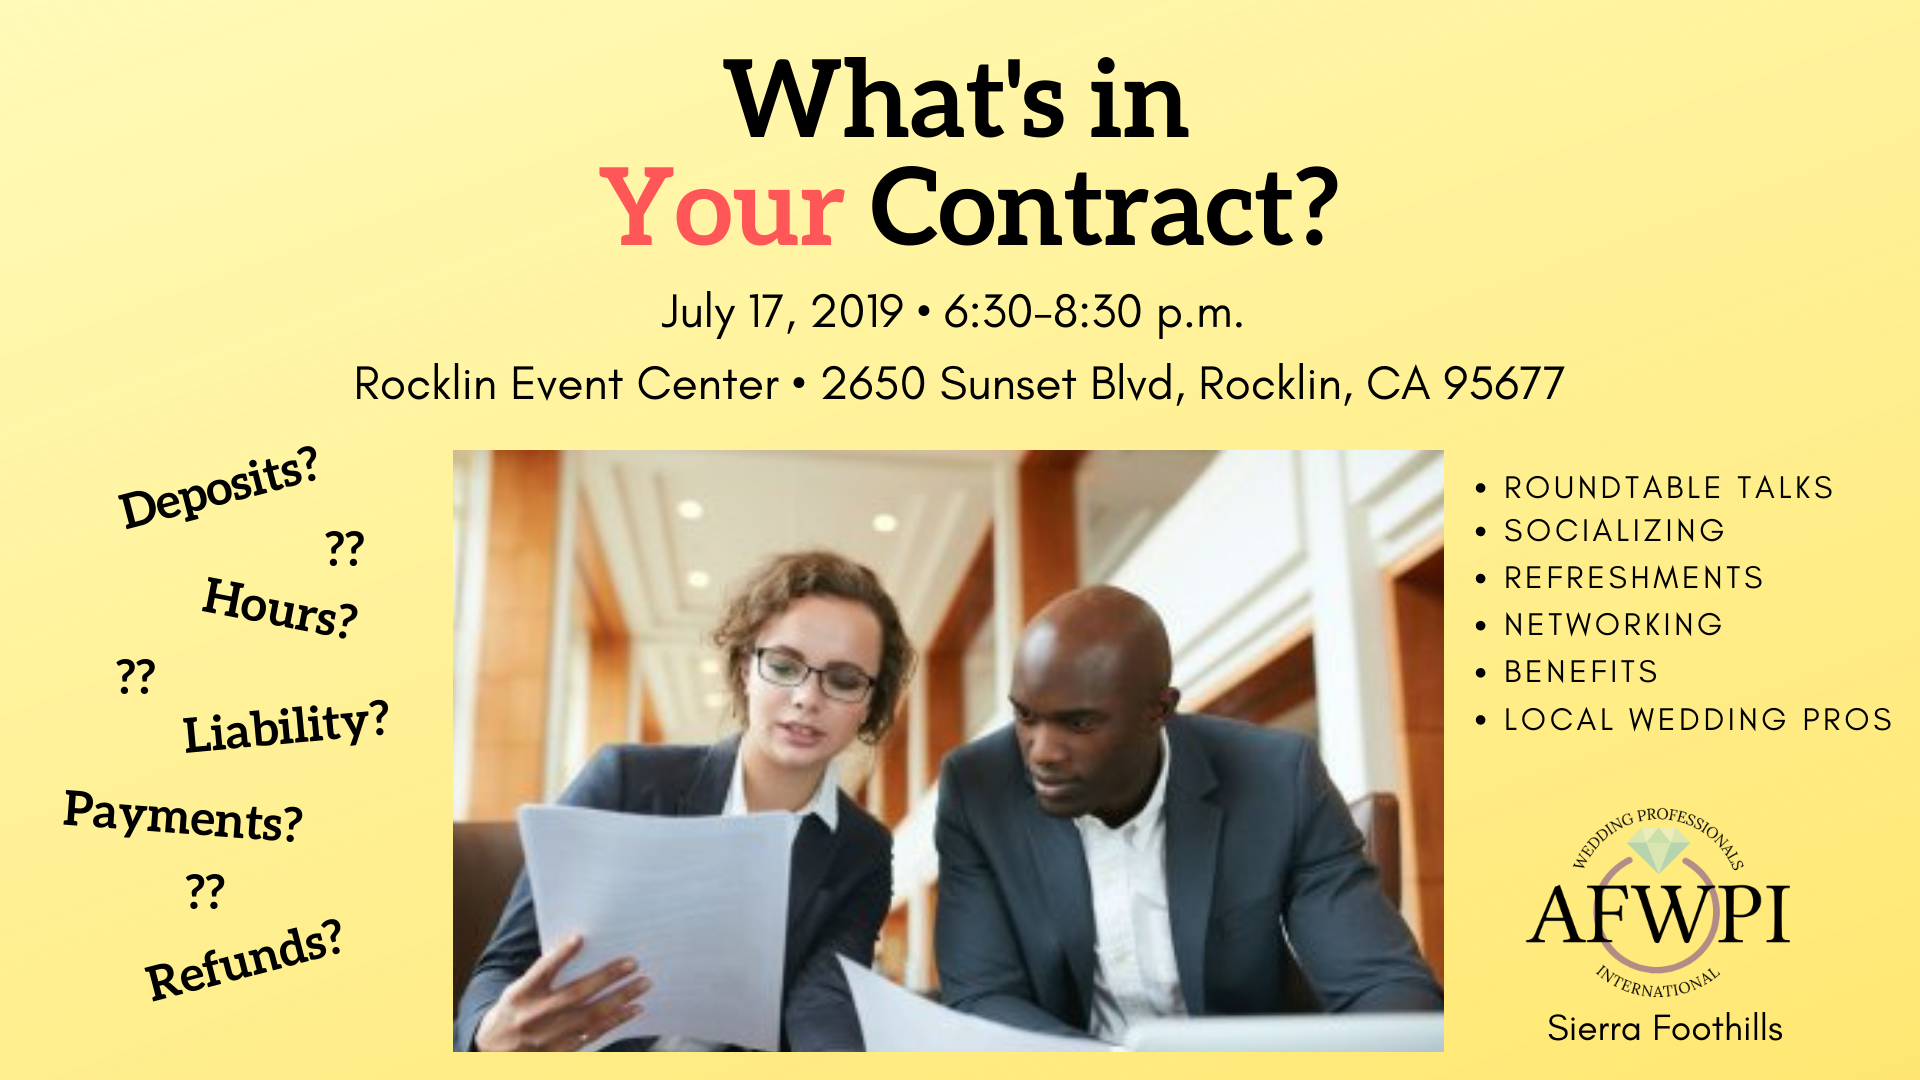 What's in Your Contract Placer wedding professionals networking mixer